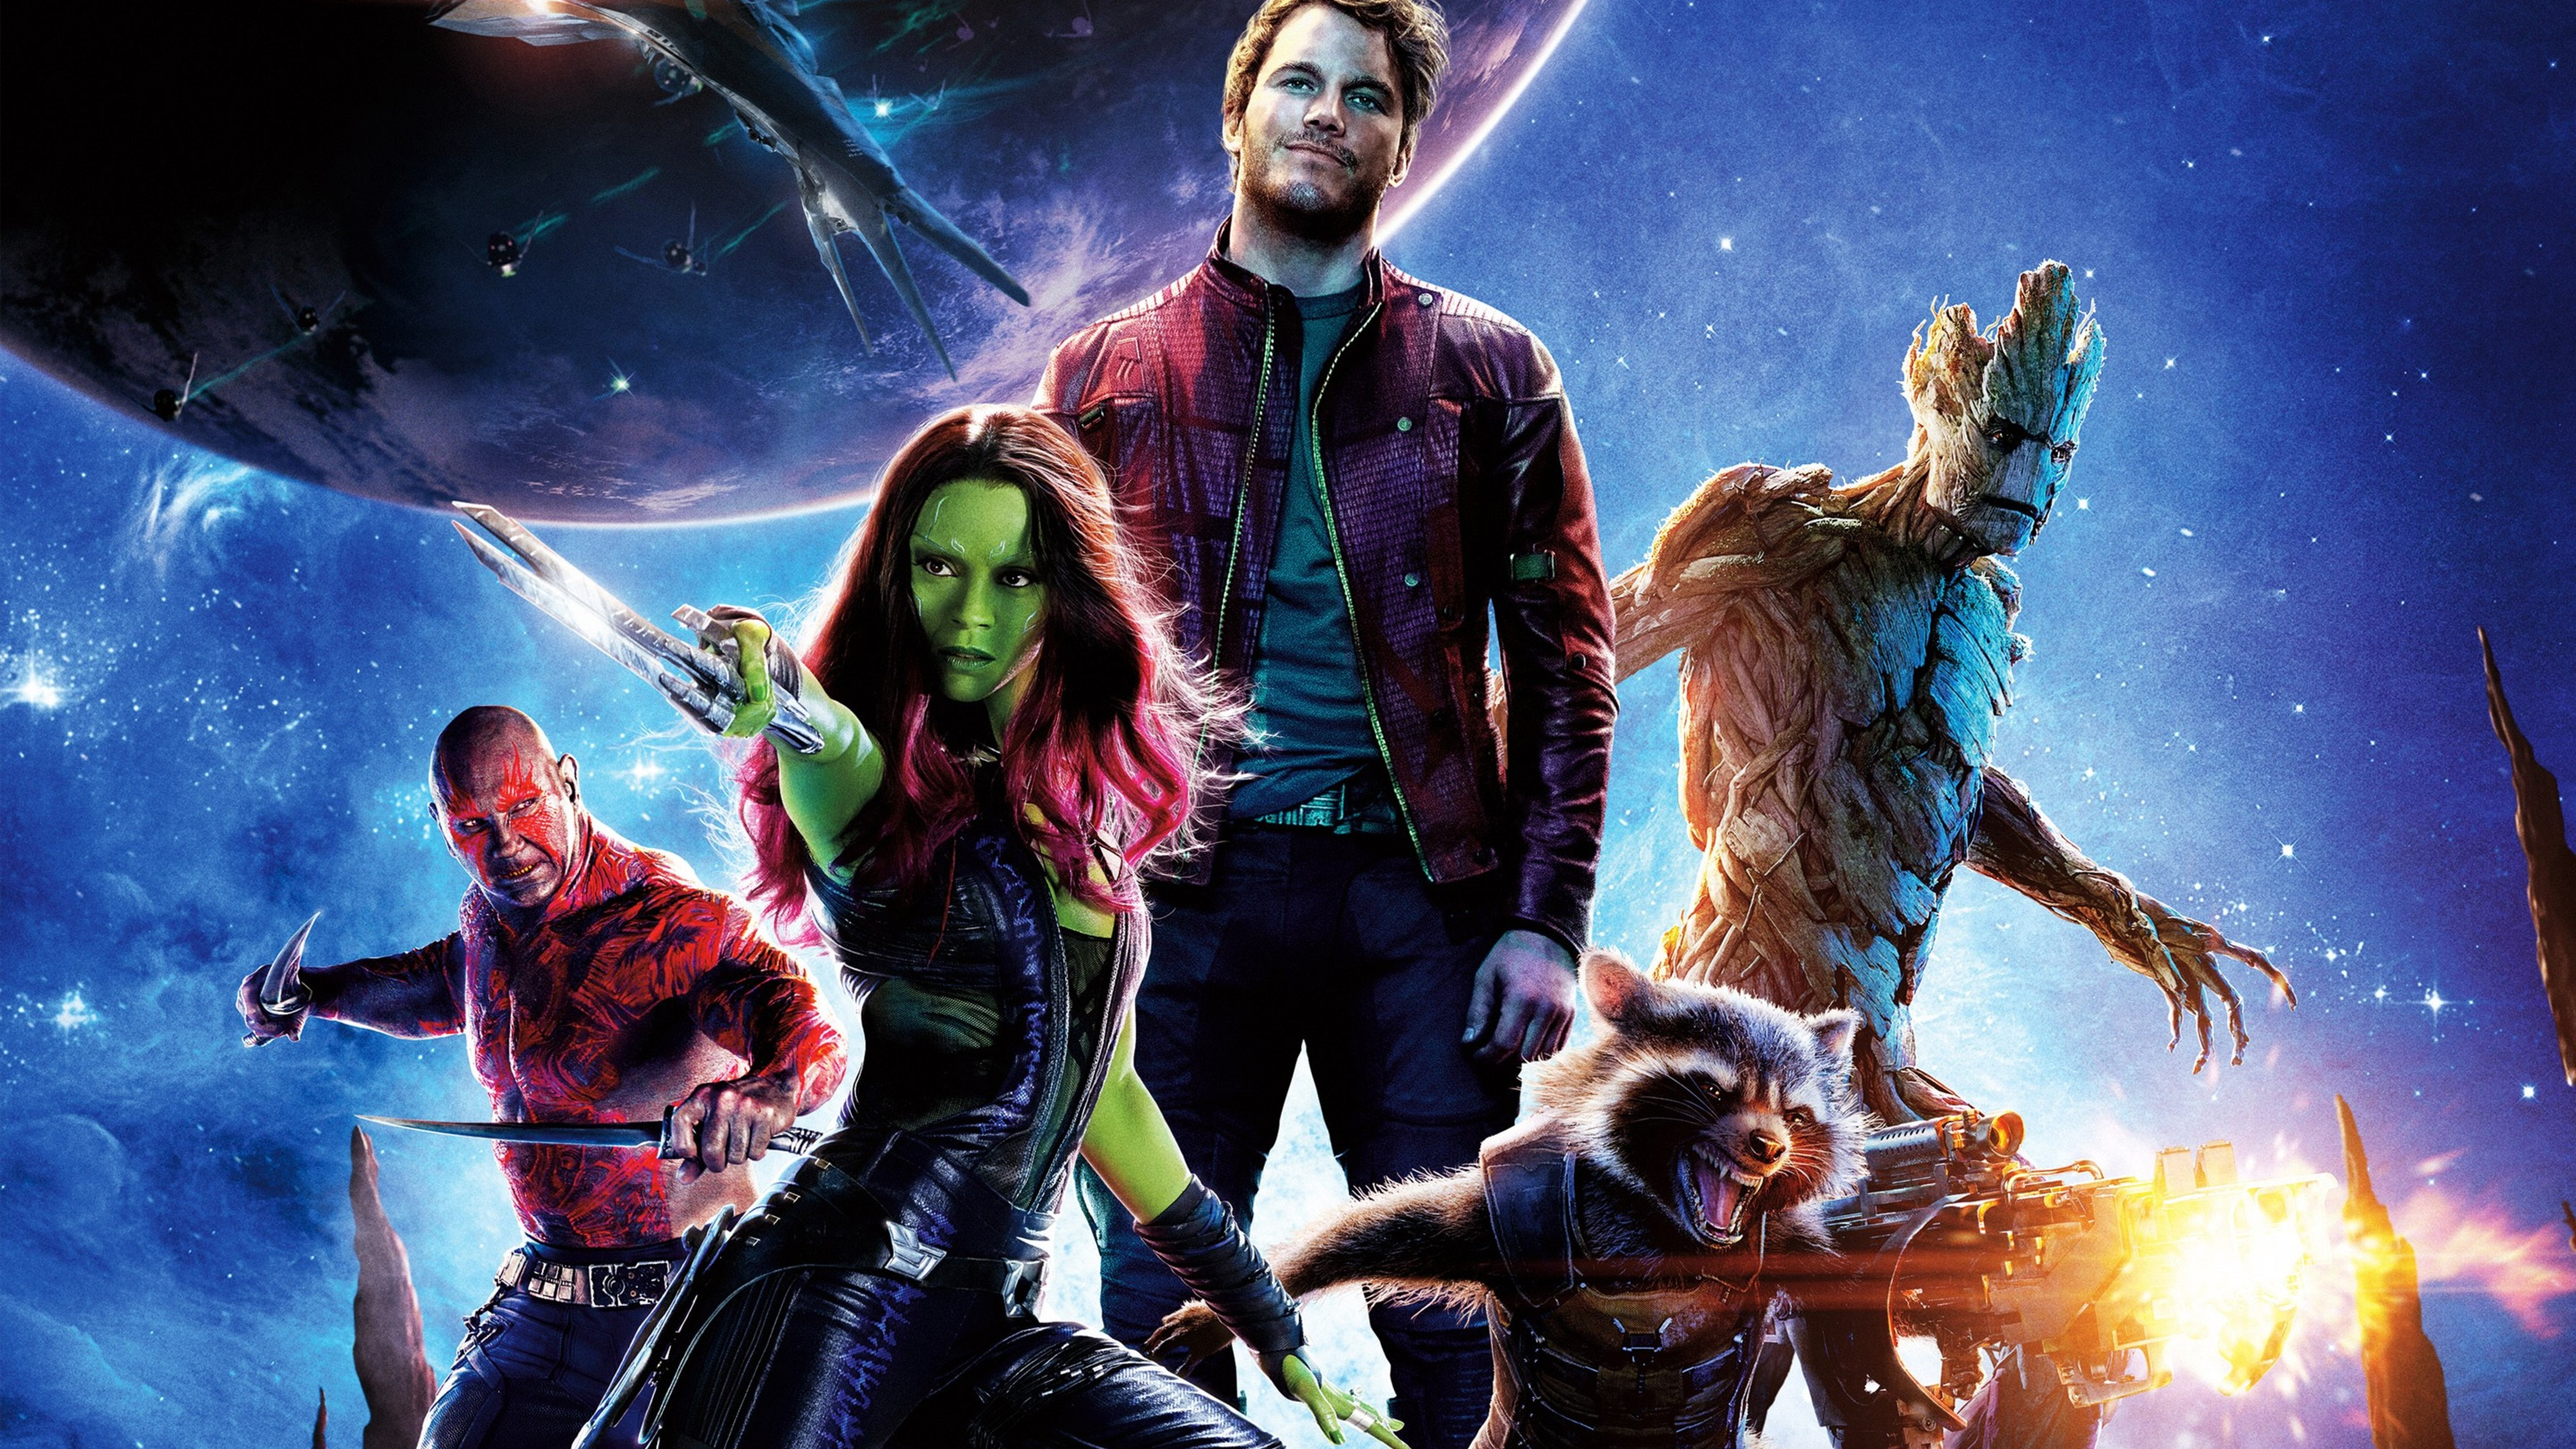 Guardians Of The Galaxy Wide, HD Movies, 4k Wallpapers ...